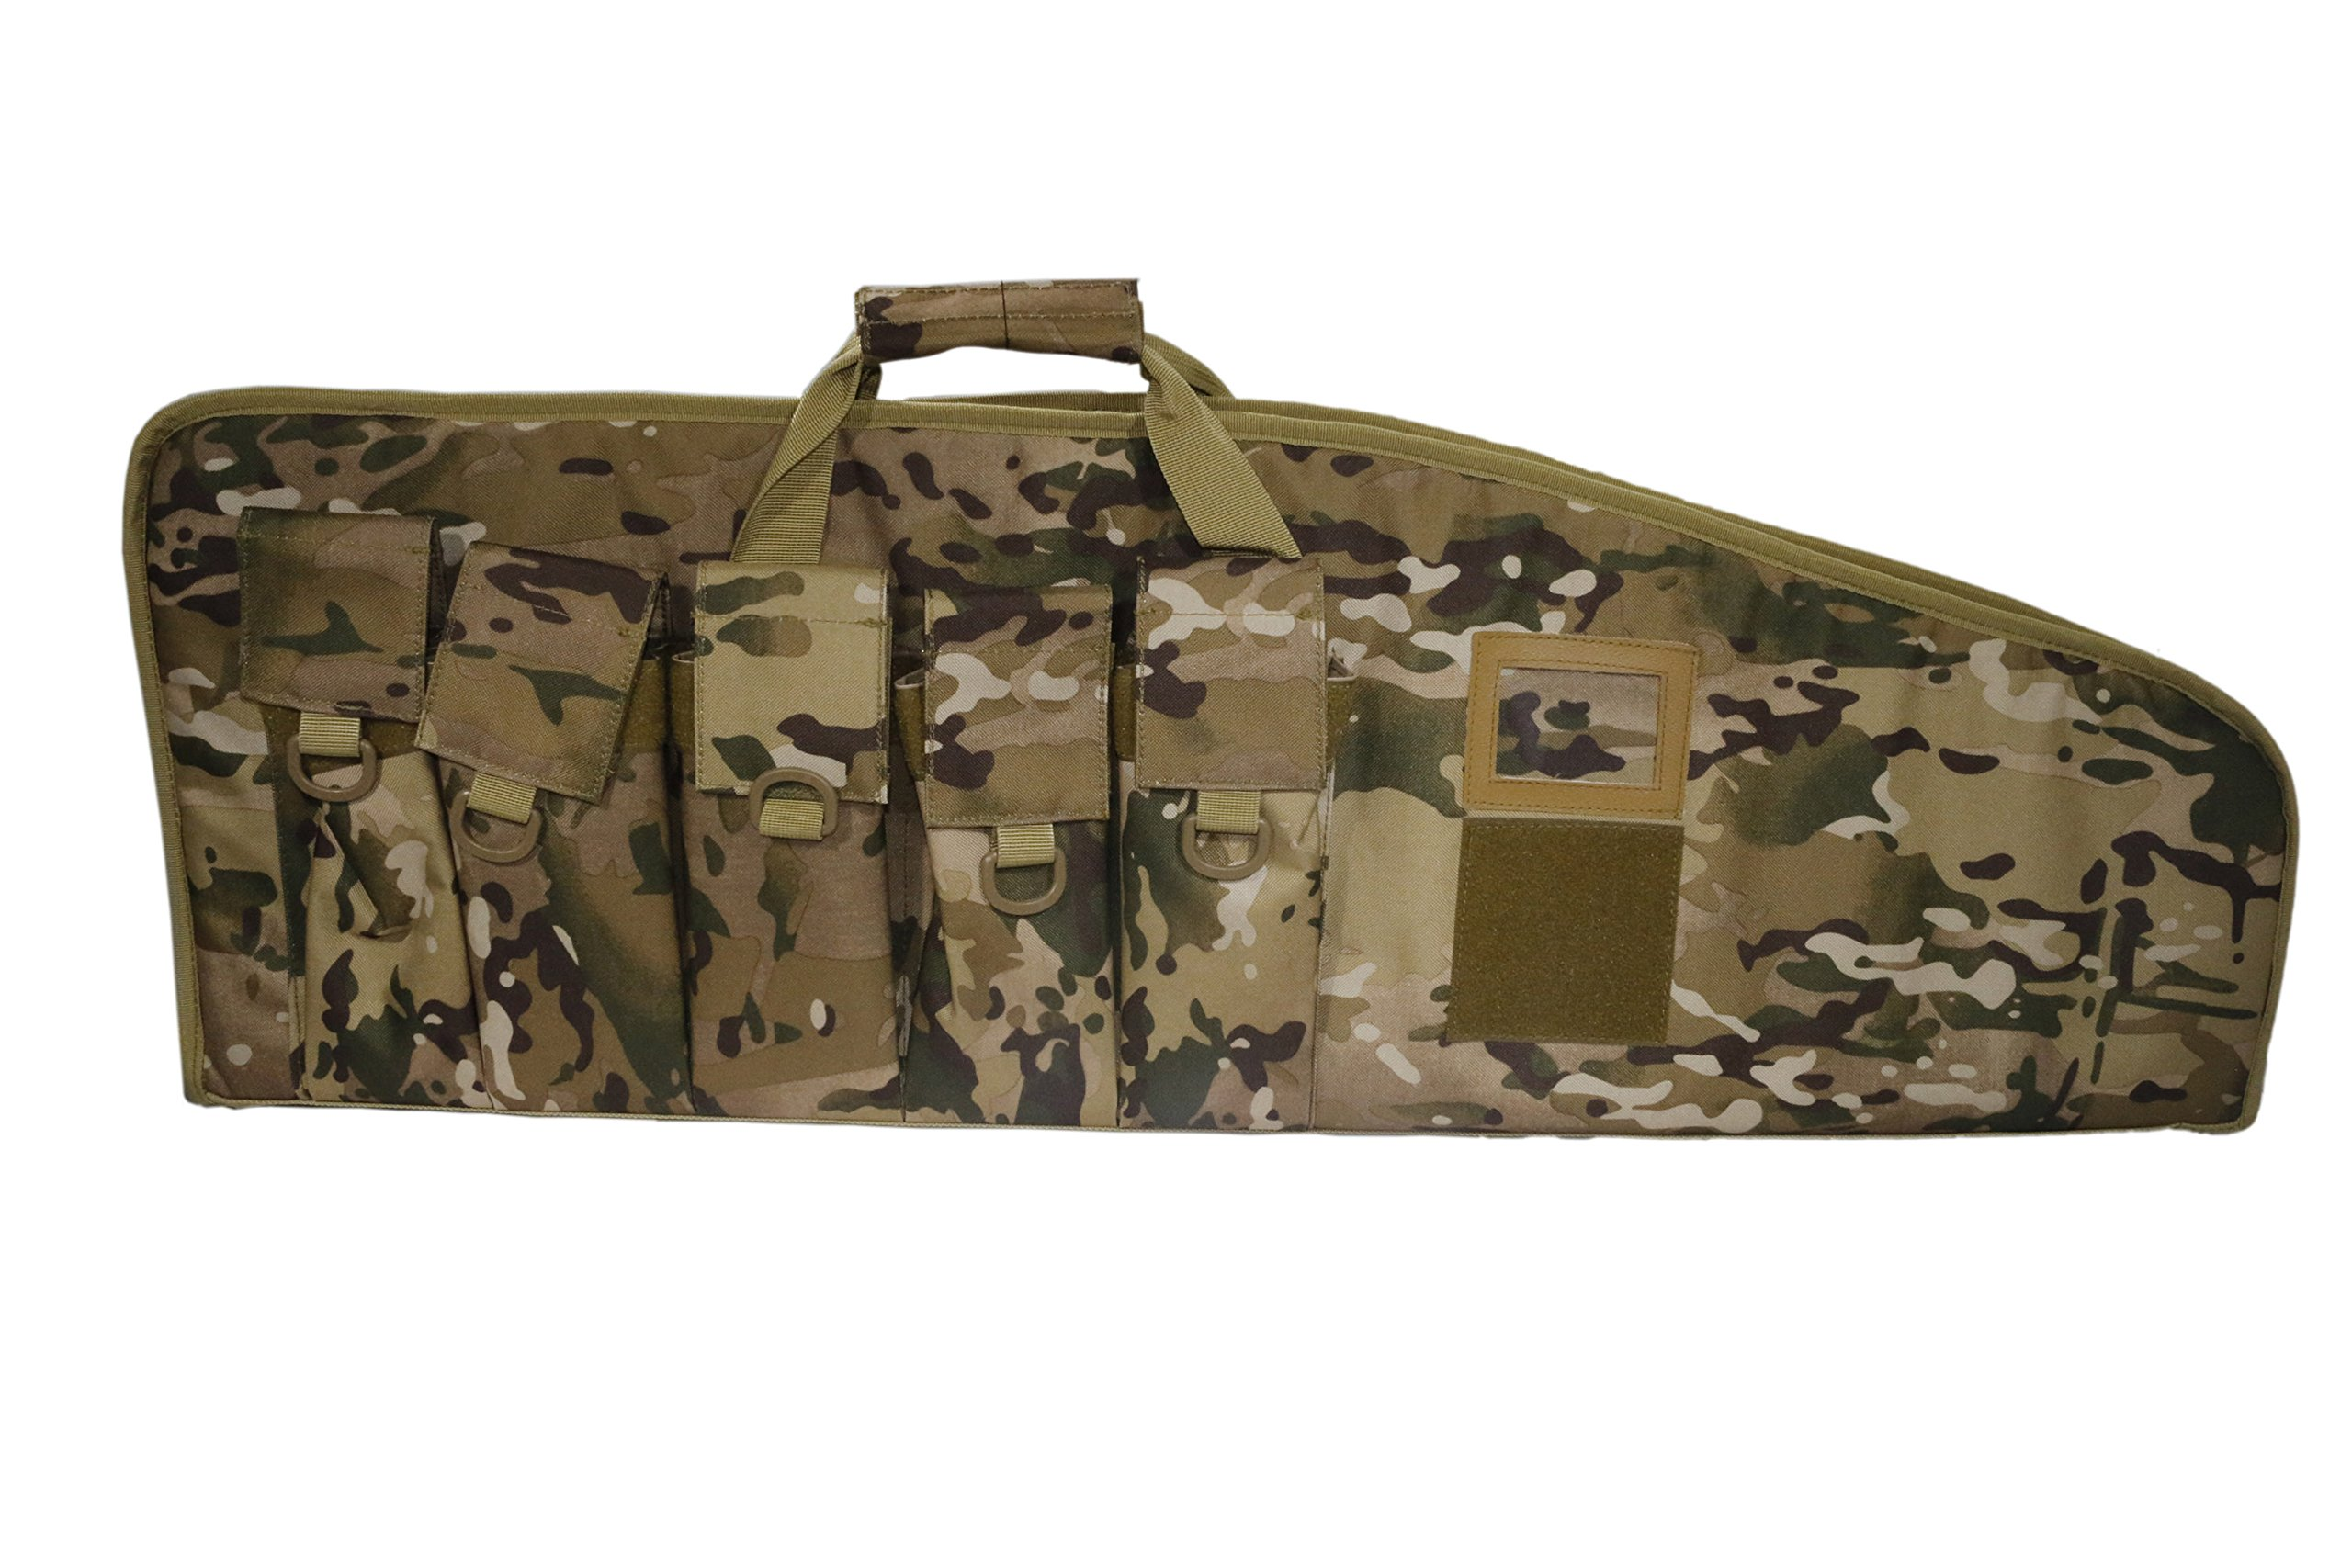 ARMYCAMOUSA Rifle Bag Outdoor Tactical Carbine Cases Water dust Resistant Long Gun Case Bag with Five Magazine Pouches for Hunting Shooting Range Sports Storage and Transport (38'' Multicam) by ARMYCAMOUSA